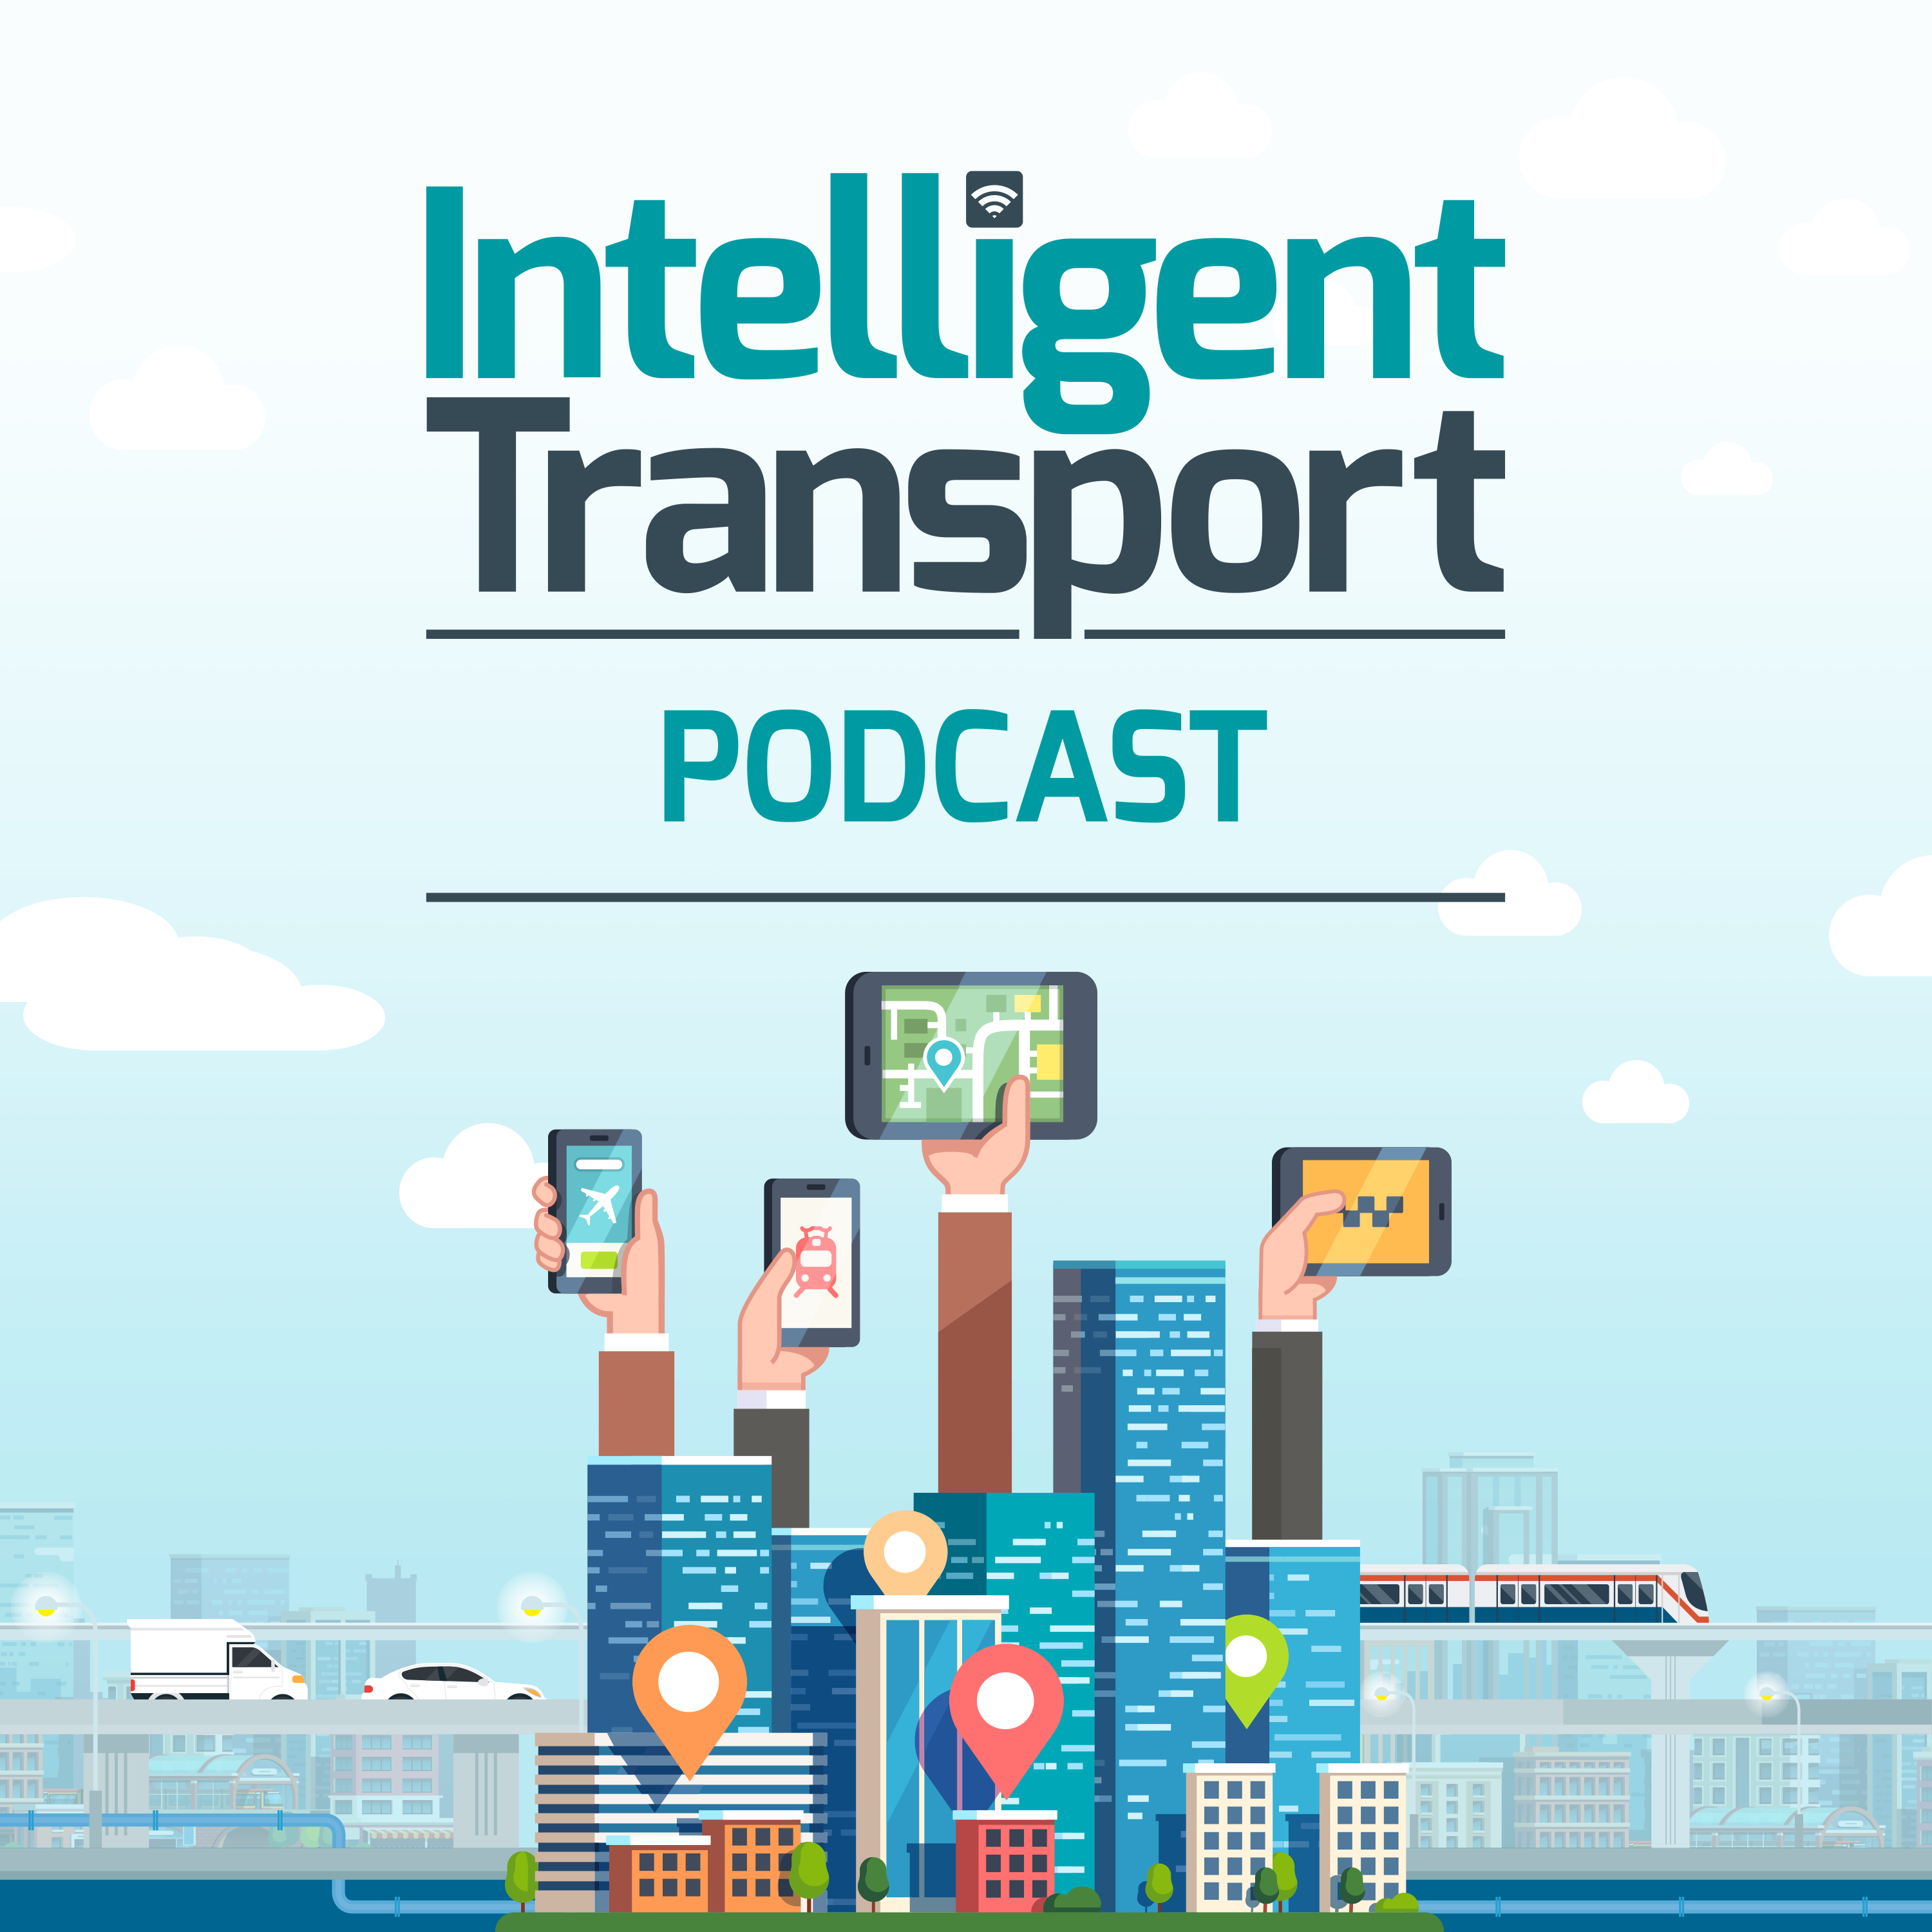 Intelligent Transport Podcast